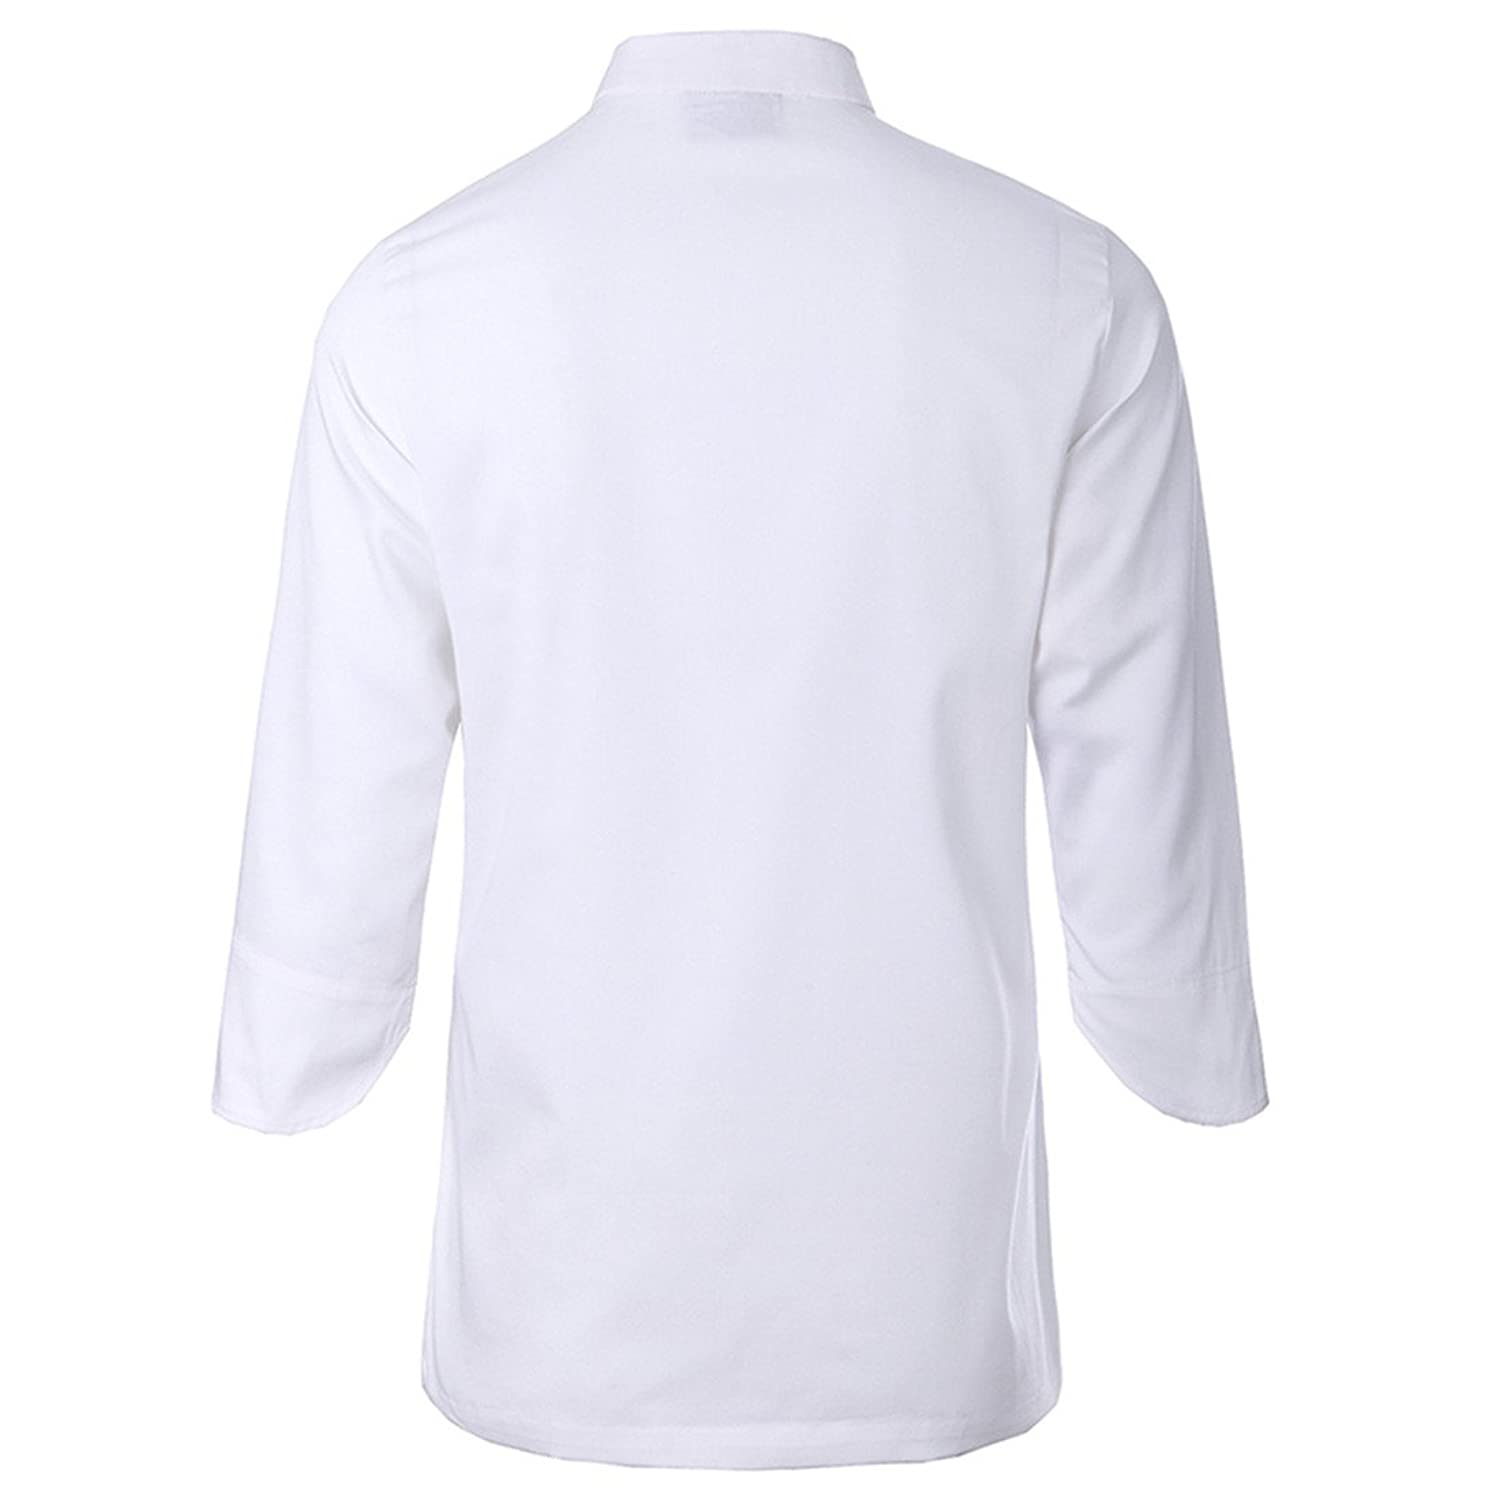 Amazon.com: ChefsUniforms White chef uniforms unisex long and ...